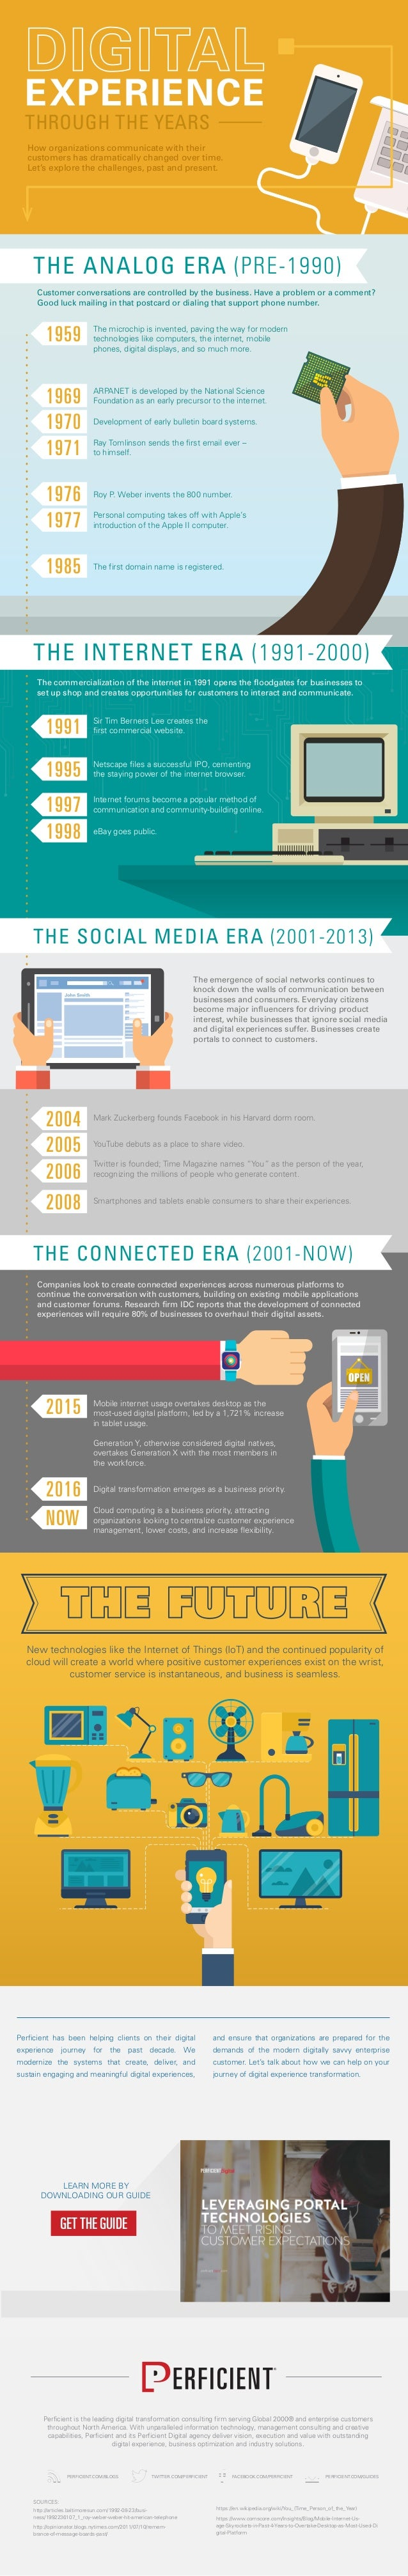 How organizations communicate with their customers has dramatically changed over time. Let's explore the challenges, past ...